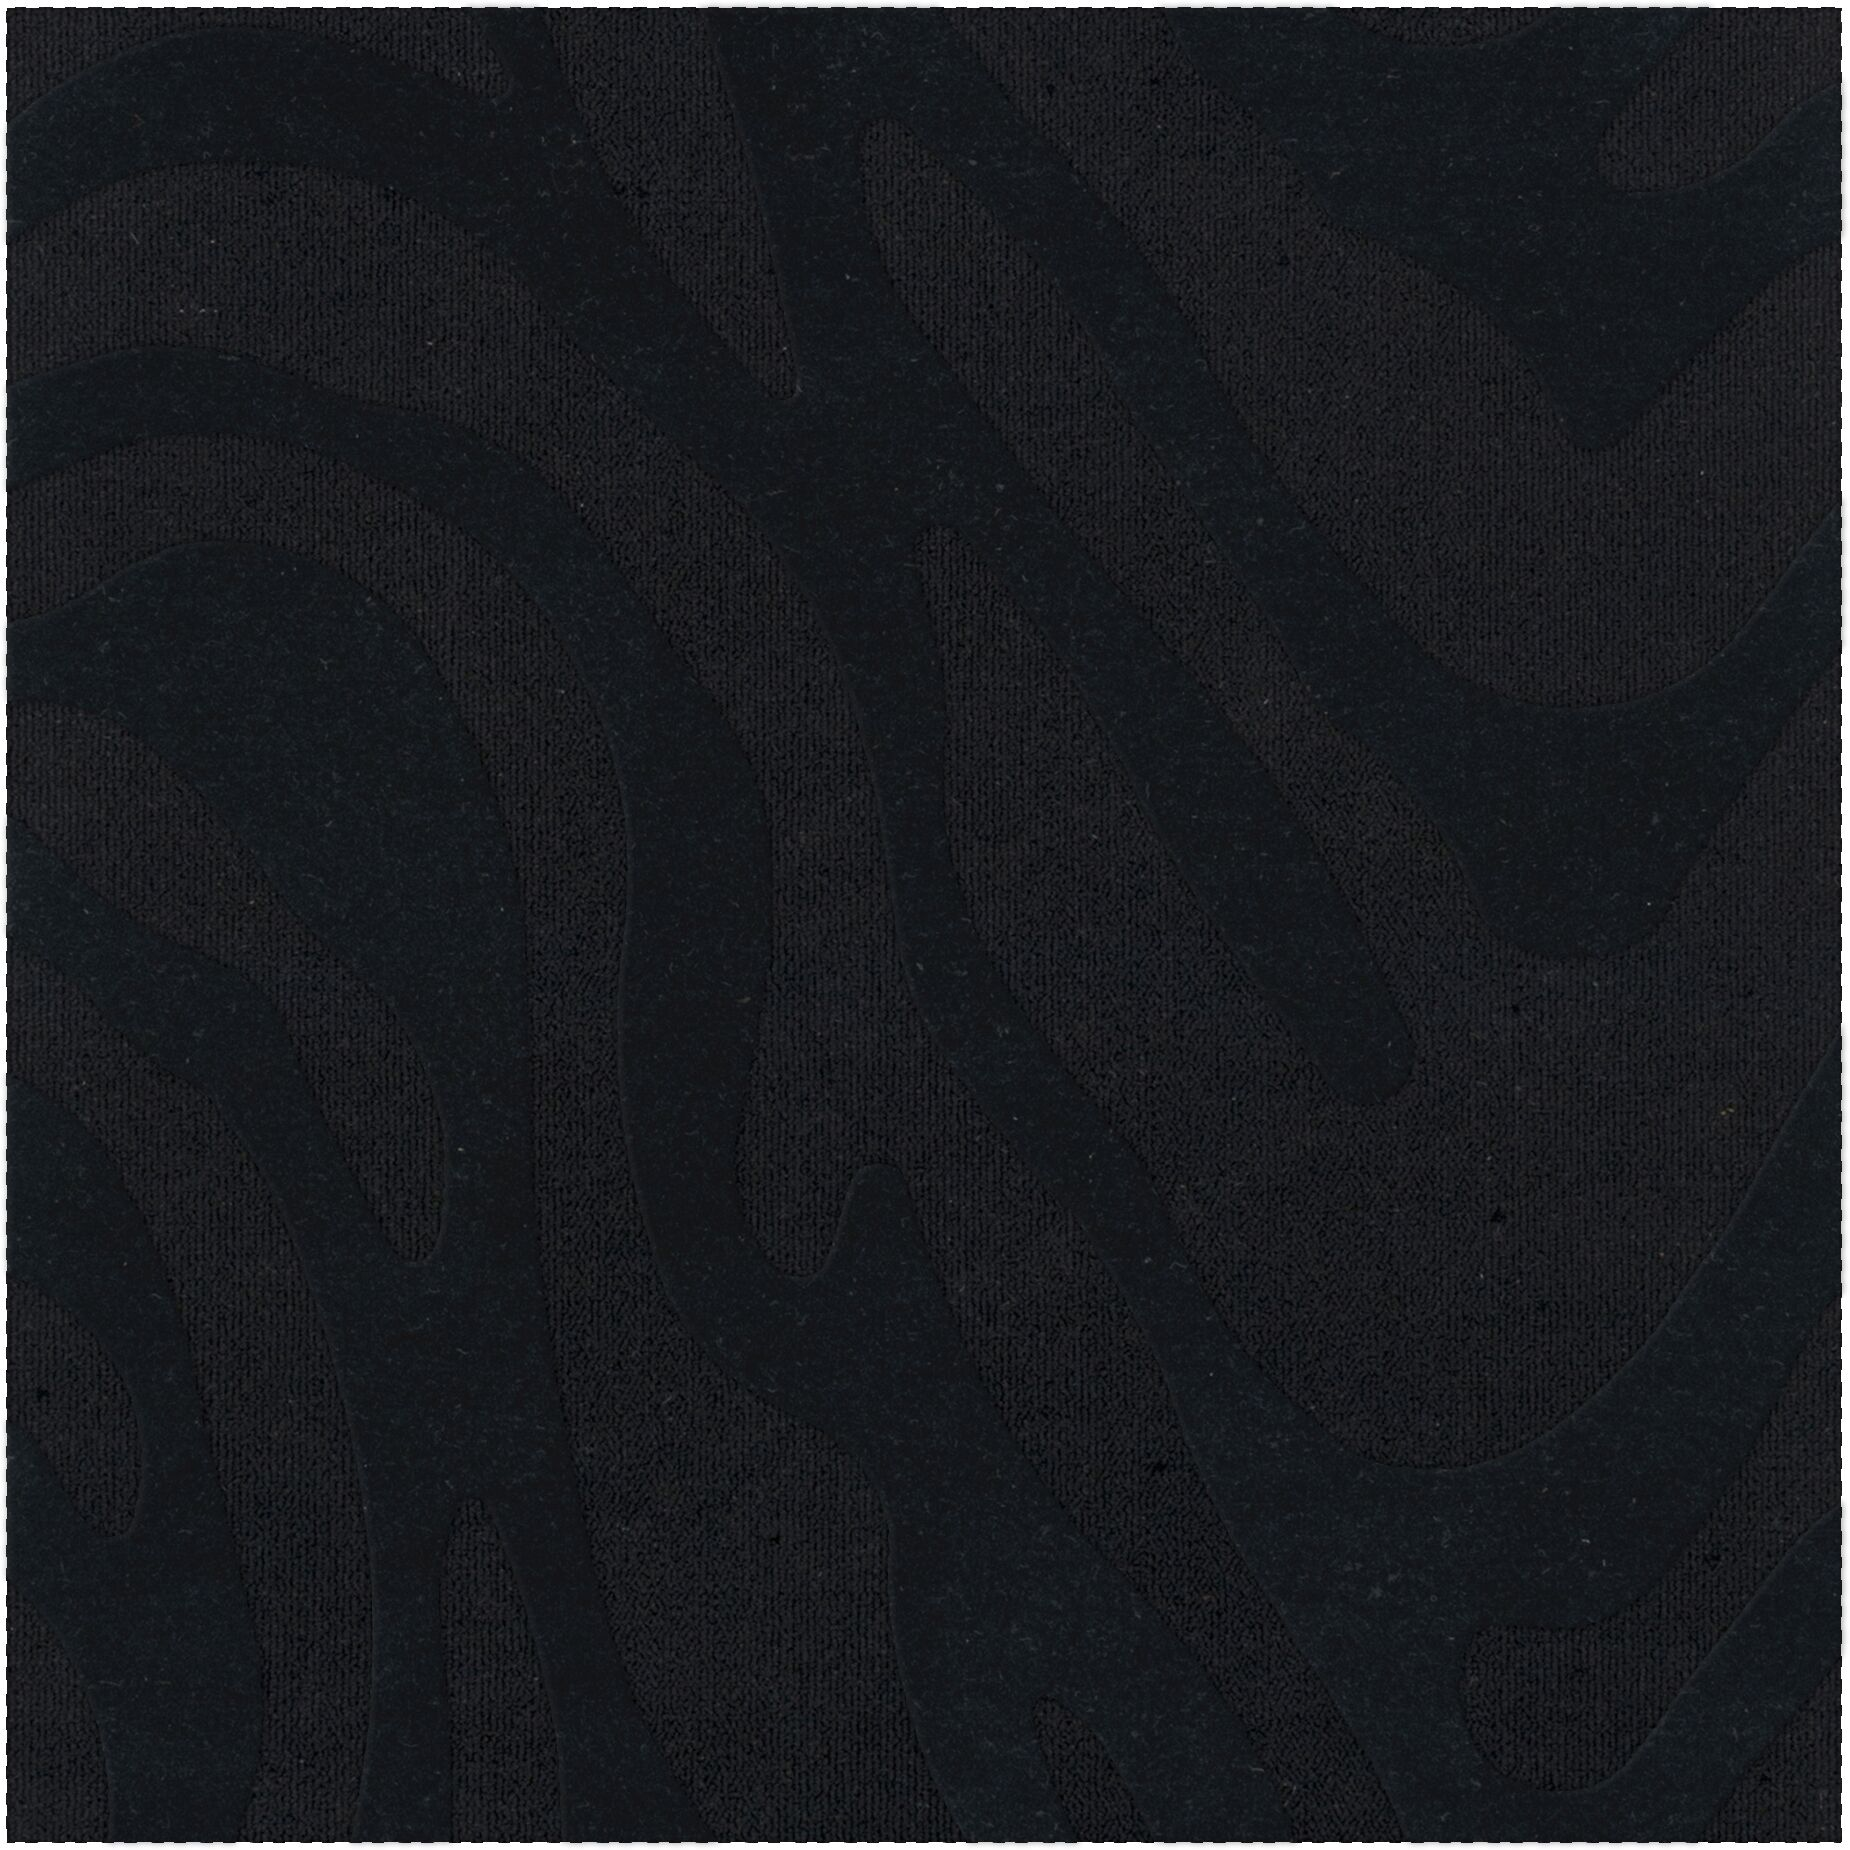 Dover Tufted Wool Black Area Rug Rug Size: Square 6'